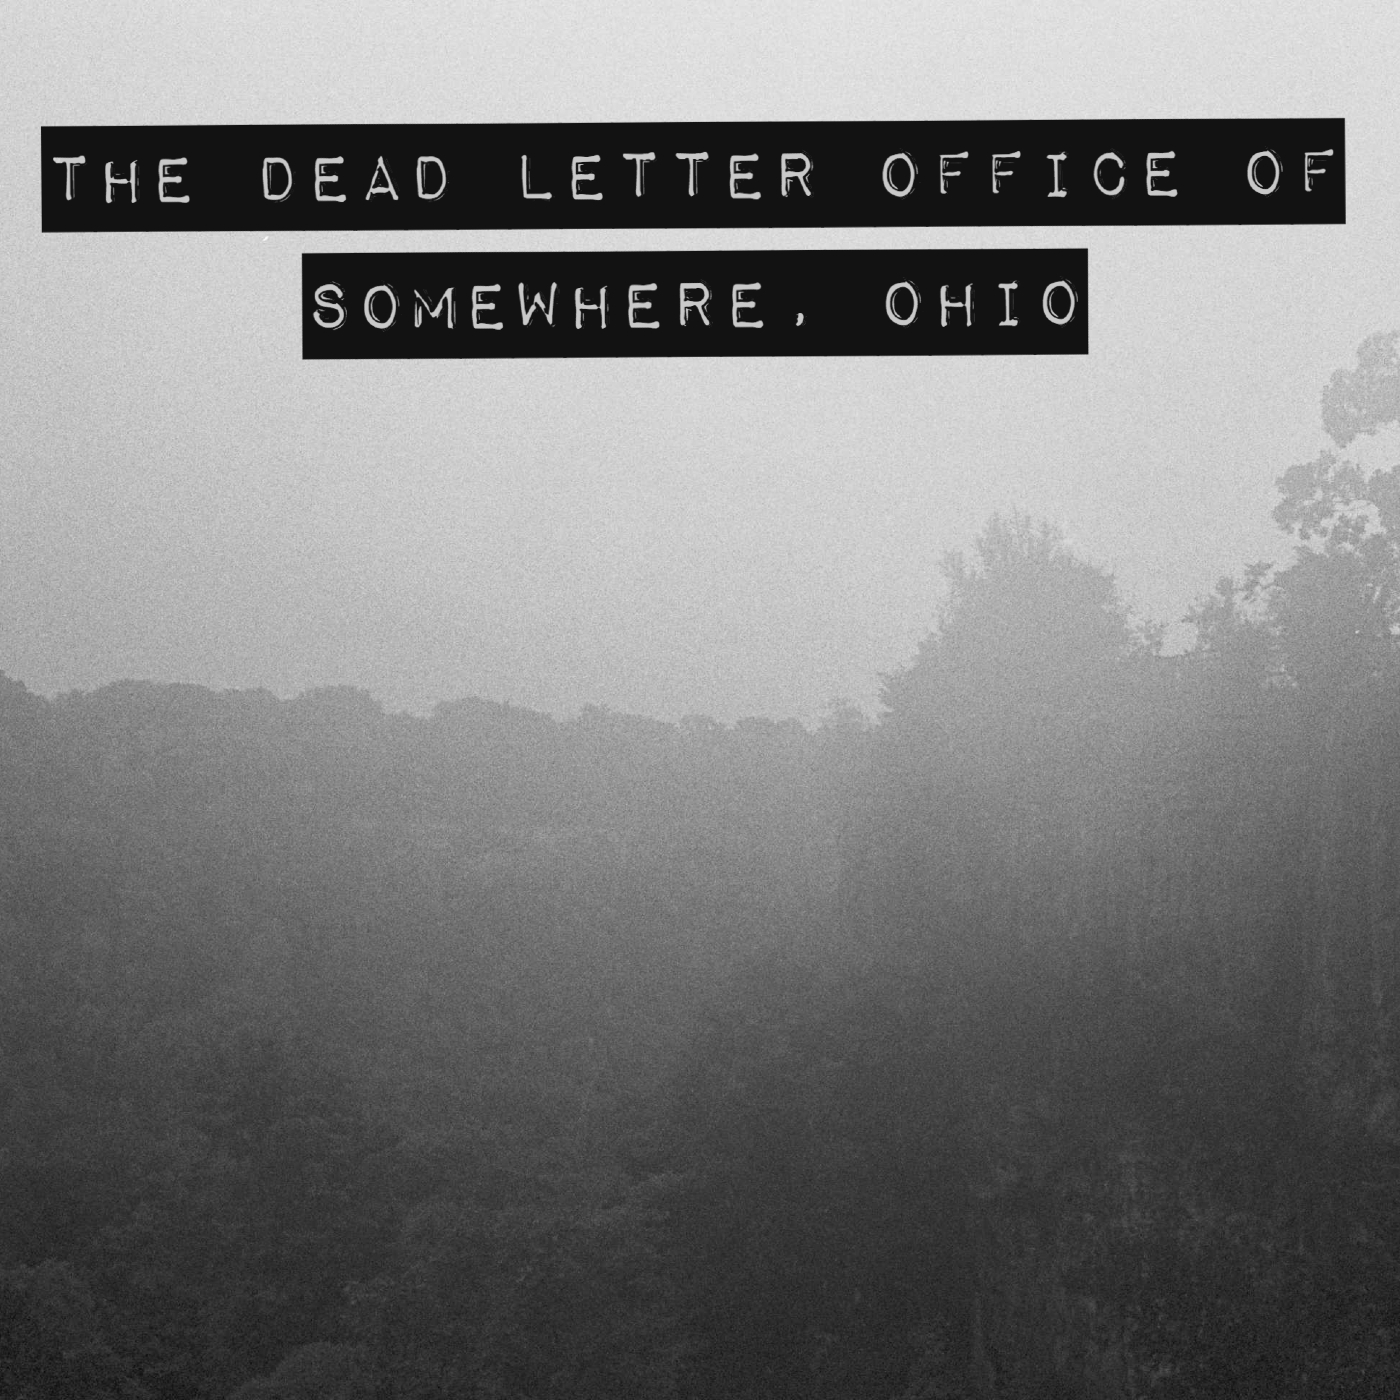 The Dead Letter Office of Somewhere, Ohio